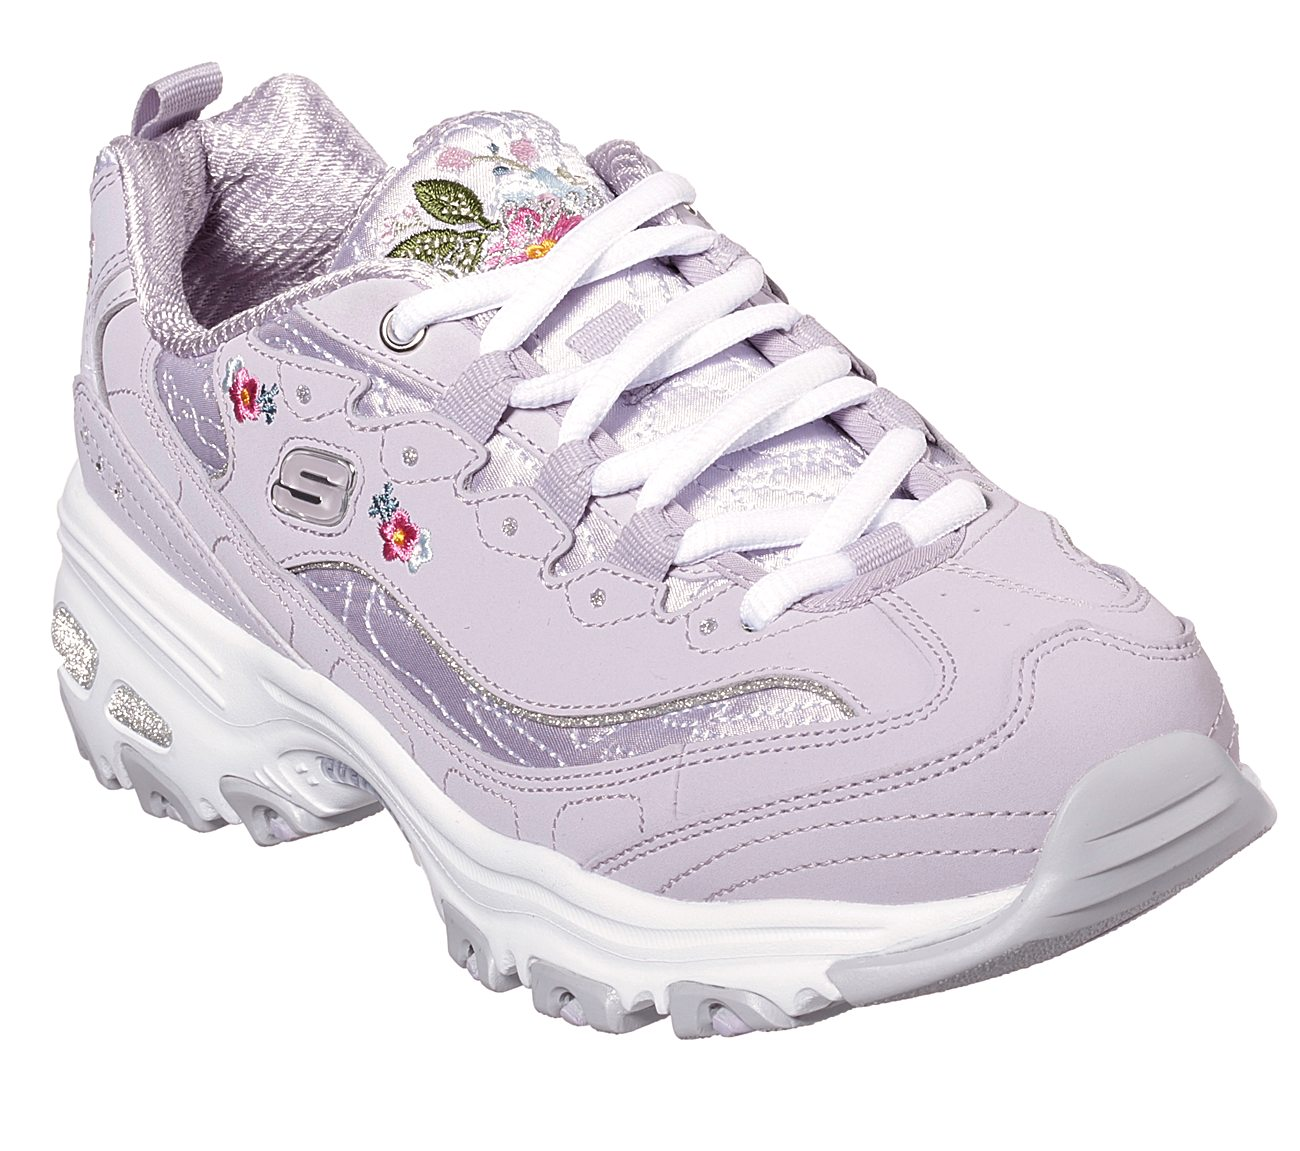 4cb7e2c47006 Buy SKECHERS D Lites - Bright Blossoms D Lites Shoes only  70.00